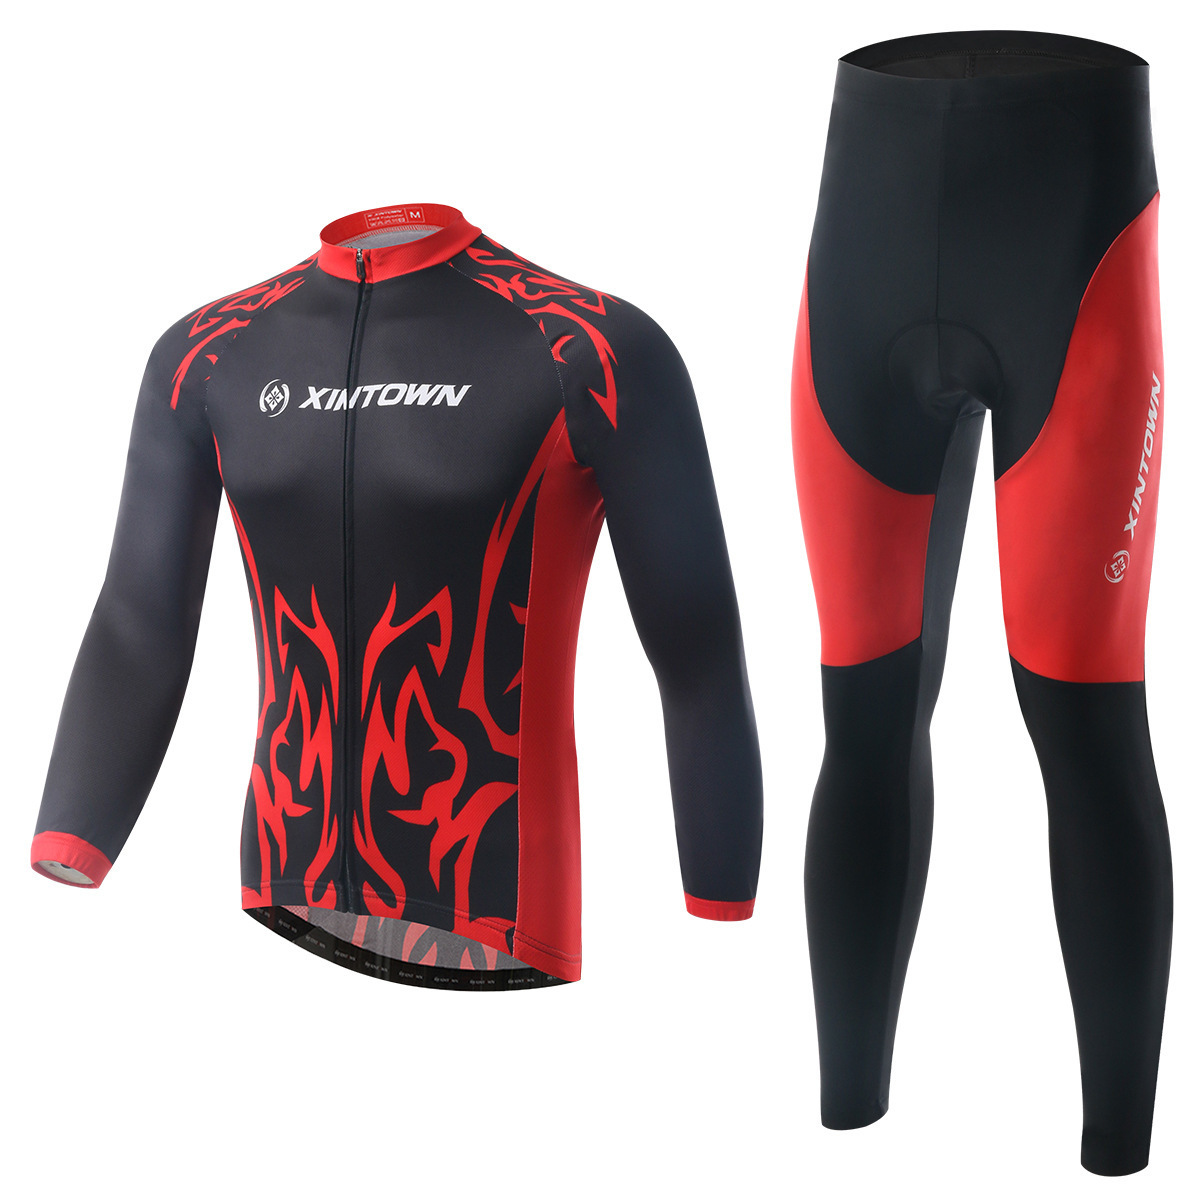 XINTOWN Long Sleeve Breathable Clothing 3D Gel Pad Pants Sport Clothes Spring Autumn MTB Road Bike Bicycle Cycling Jersey Set basecamp cycling jersey long sleeves sets spring bike wear breathable bicycle clothing riding outdoor sports sponge 3d padded